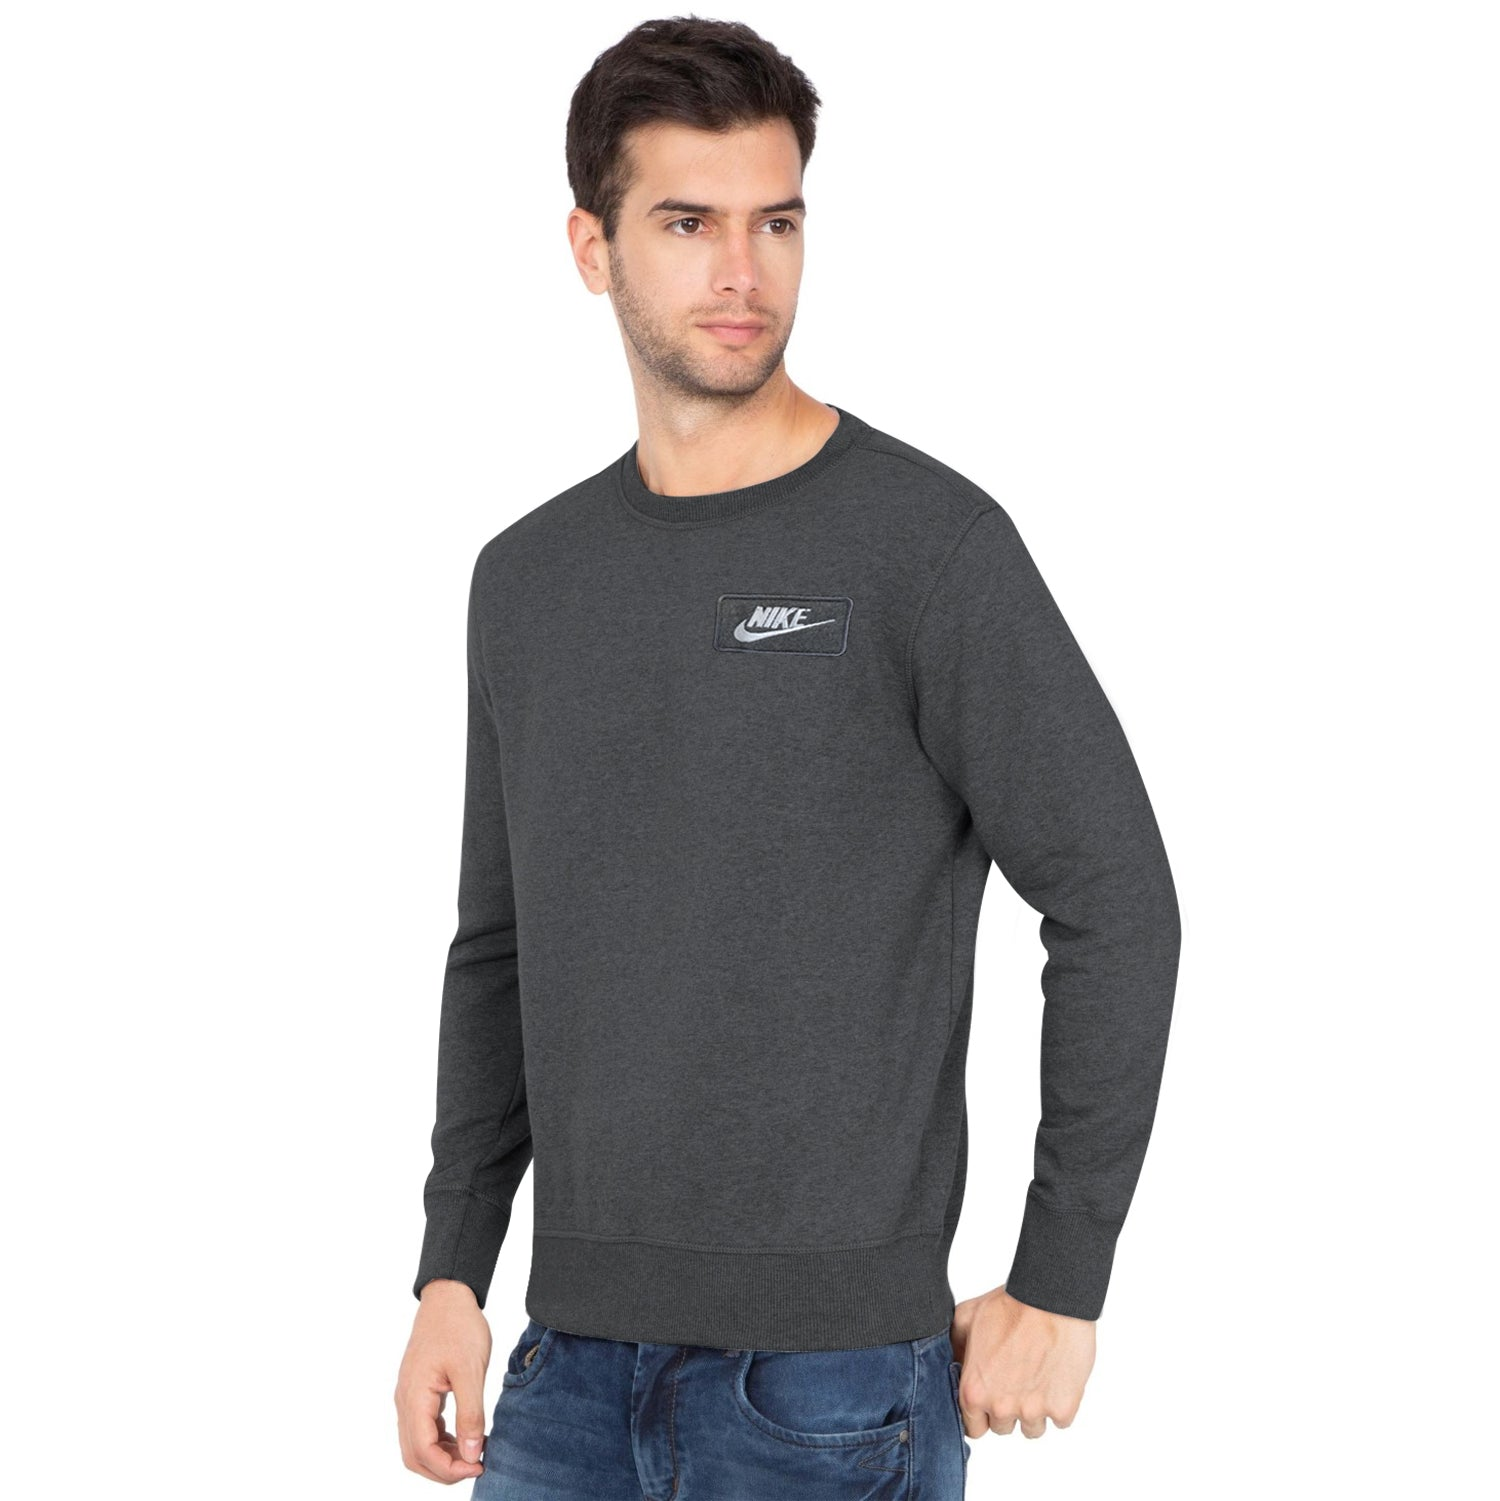 NK Fleece Charcoal Melange & White Embroidery Sweatshirt For Men-Charcoal Melange-BE10340